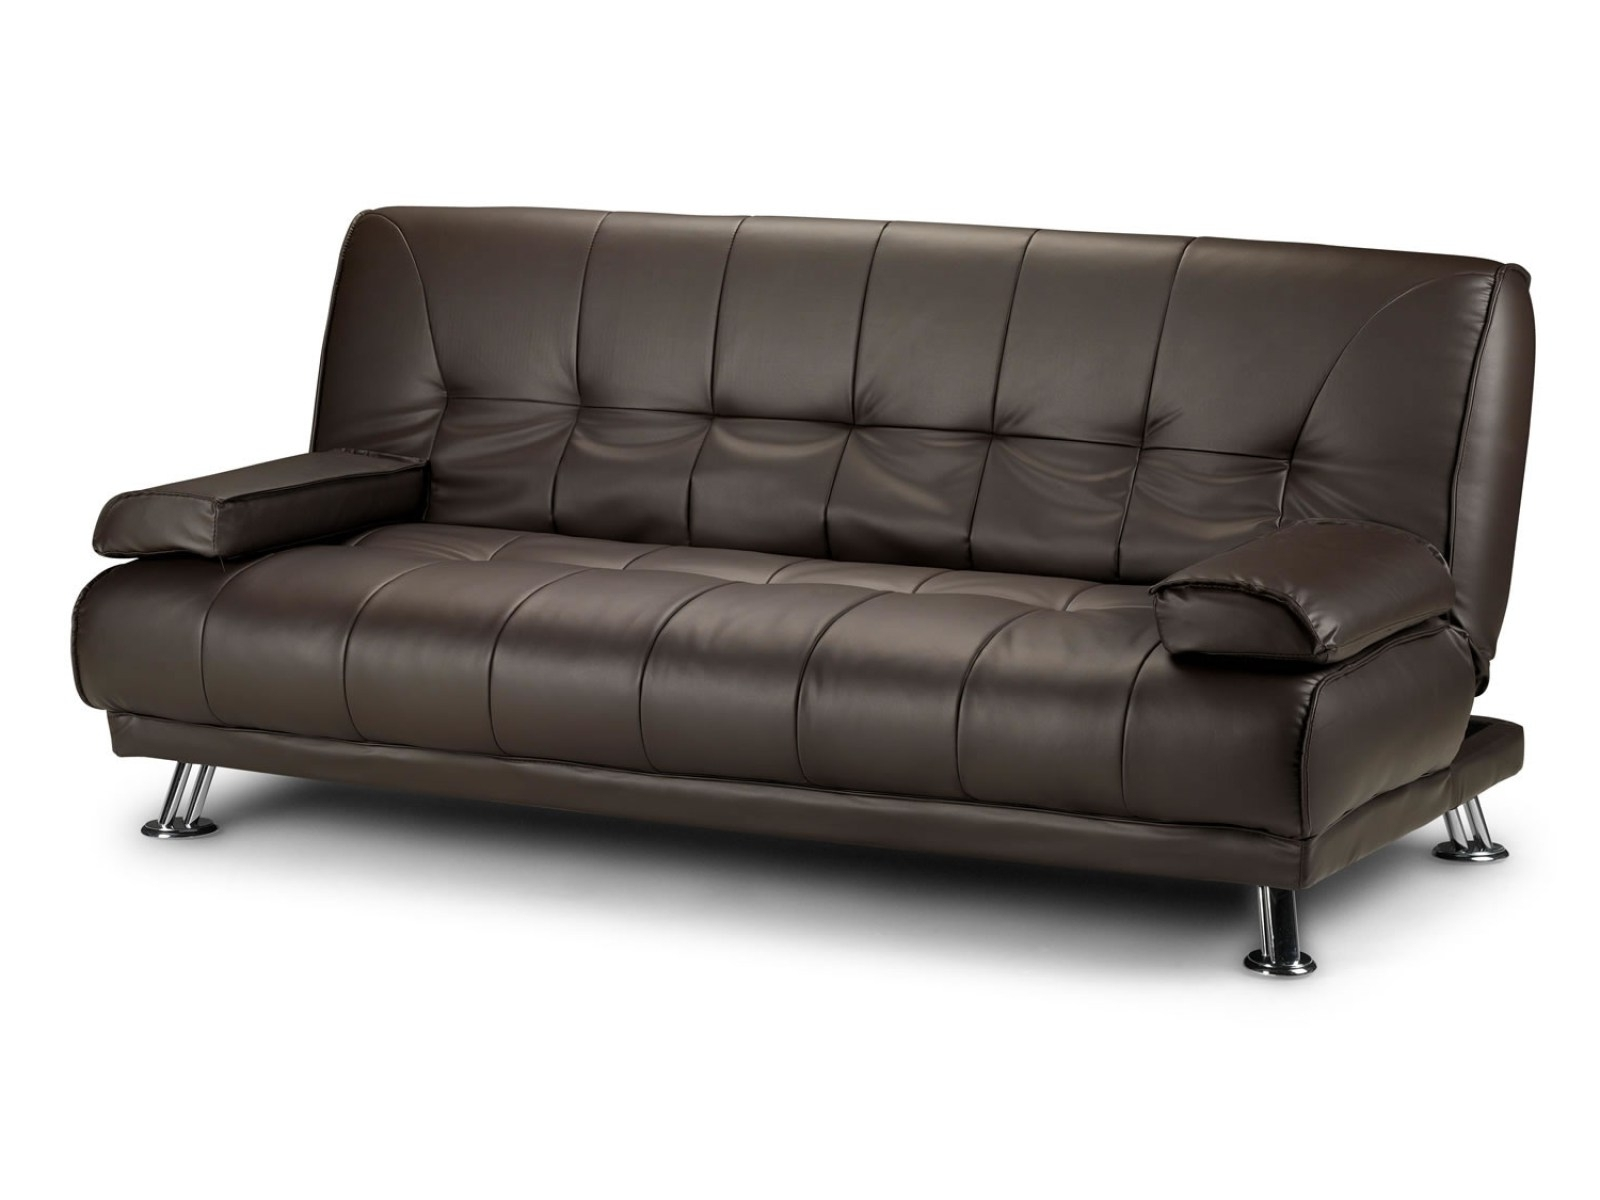 ☆▻ Sofa : 36 Elegant Leather Sofa Bed Fabric Sofas Sectionals With Best And Newest Leather Sofas With Storage (View 1 of 20)